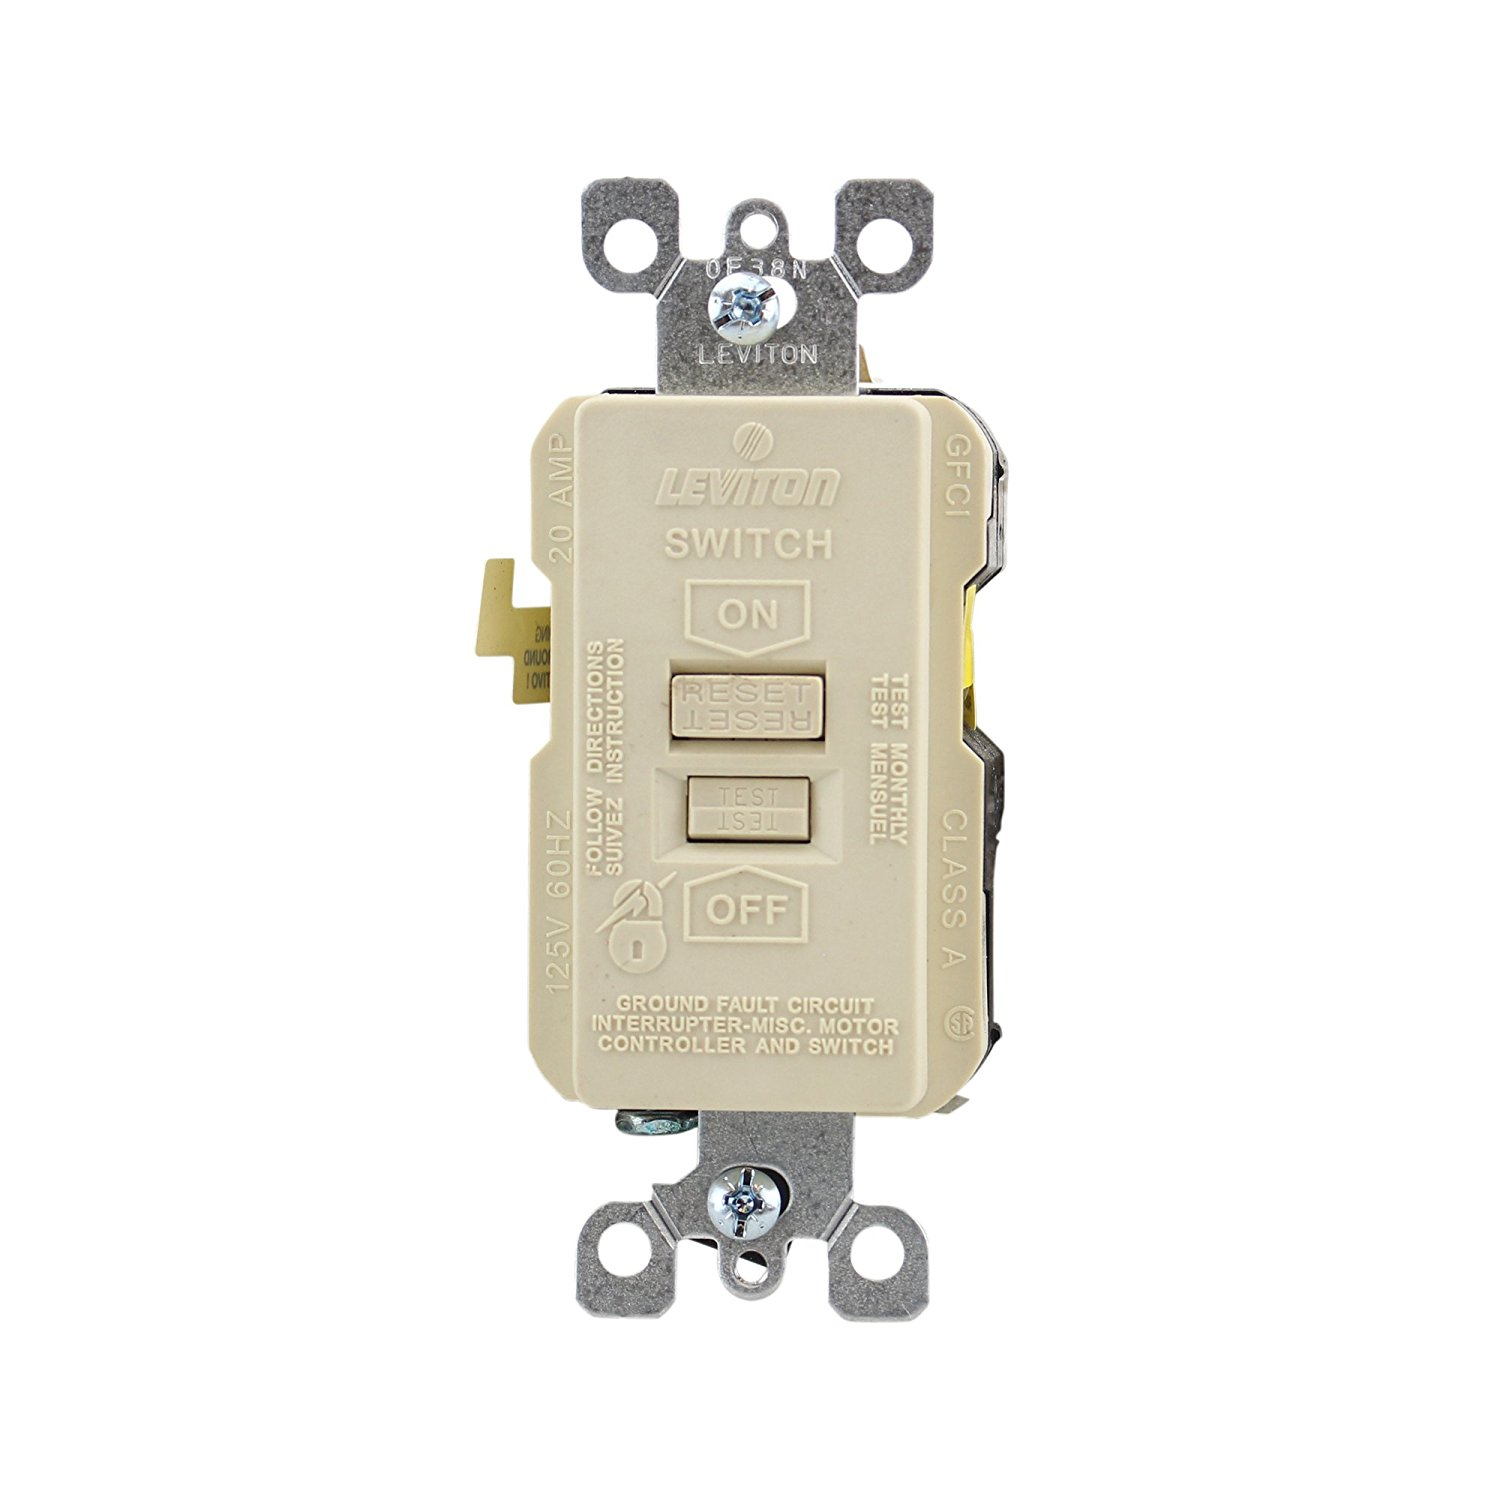 Cheap Leviton 20a, find Leviton 20a deals on line at Alibaba.com